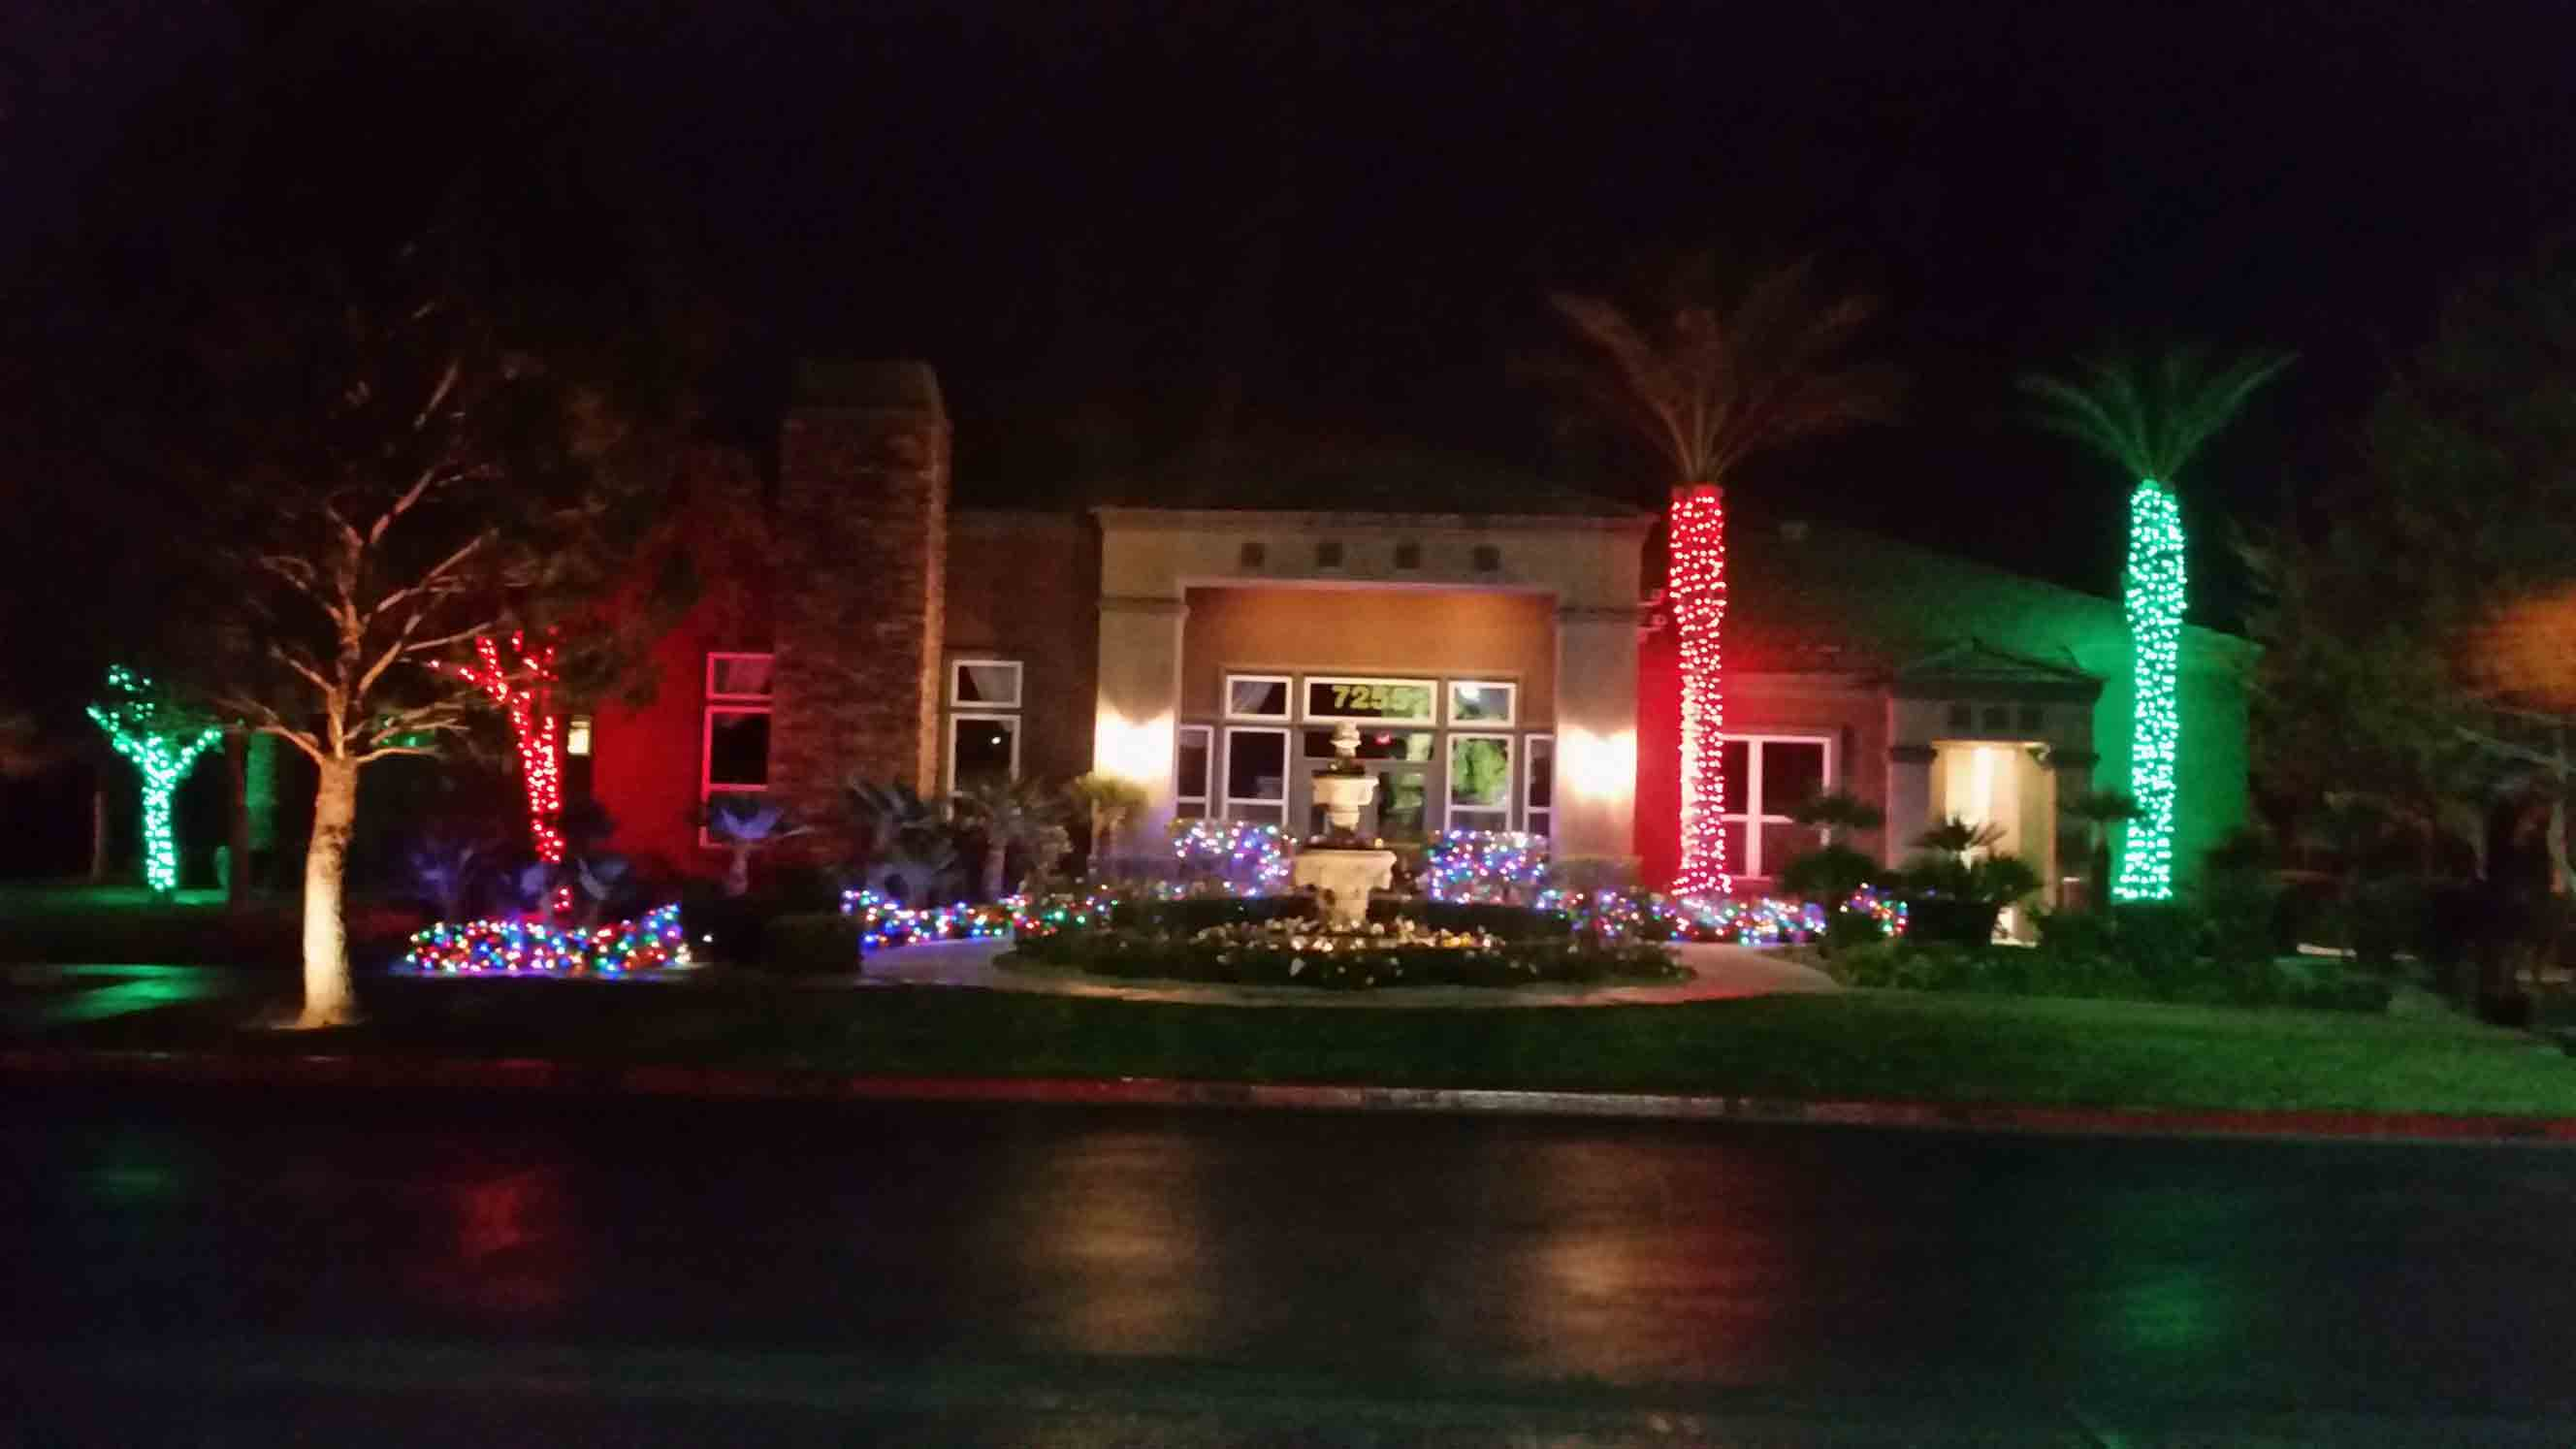 Apartment office building decorated by Holiday Decorations in Las Vegas